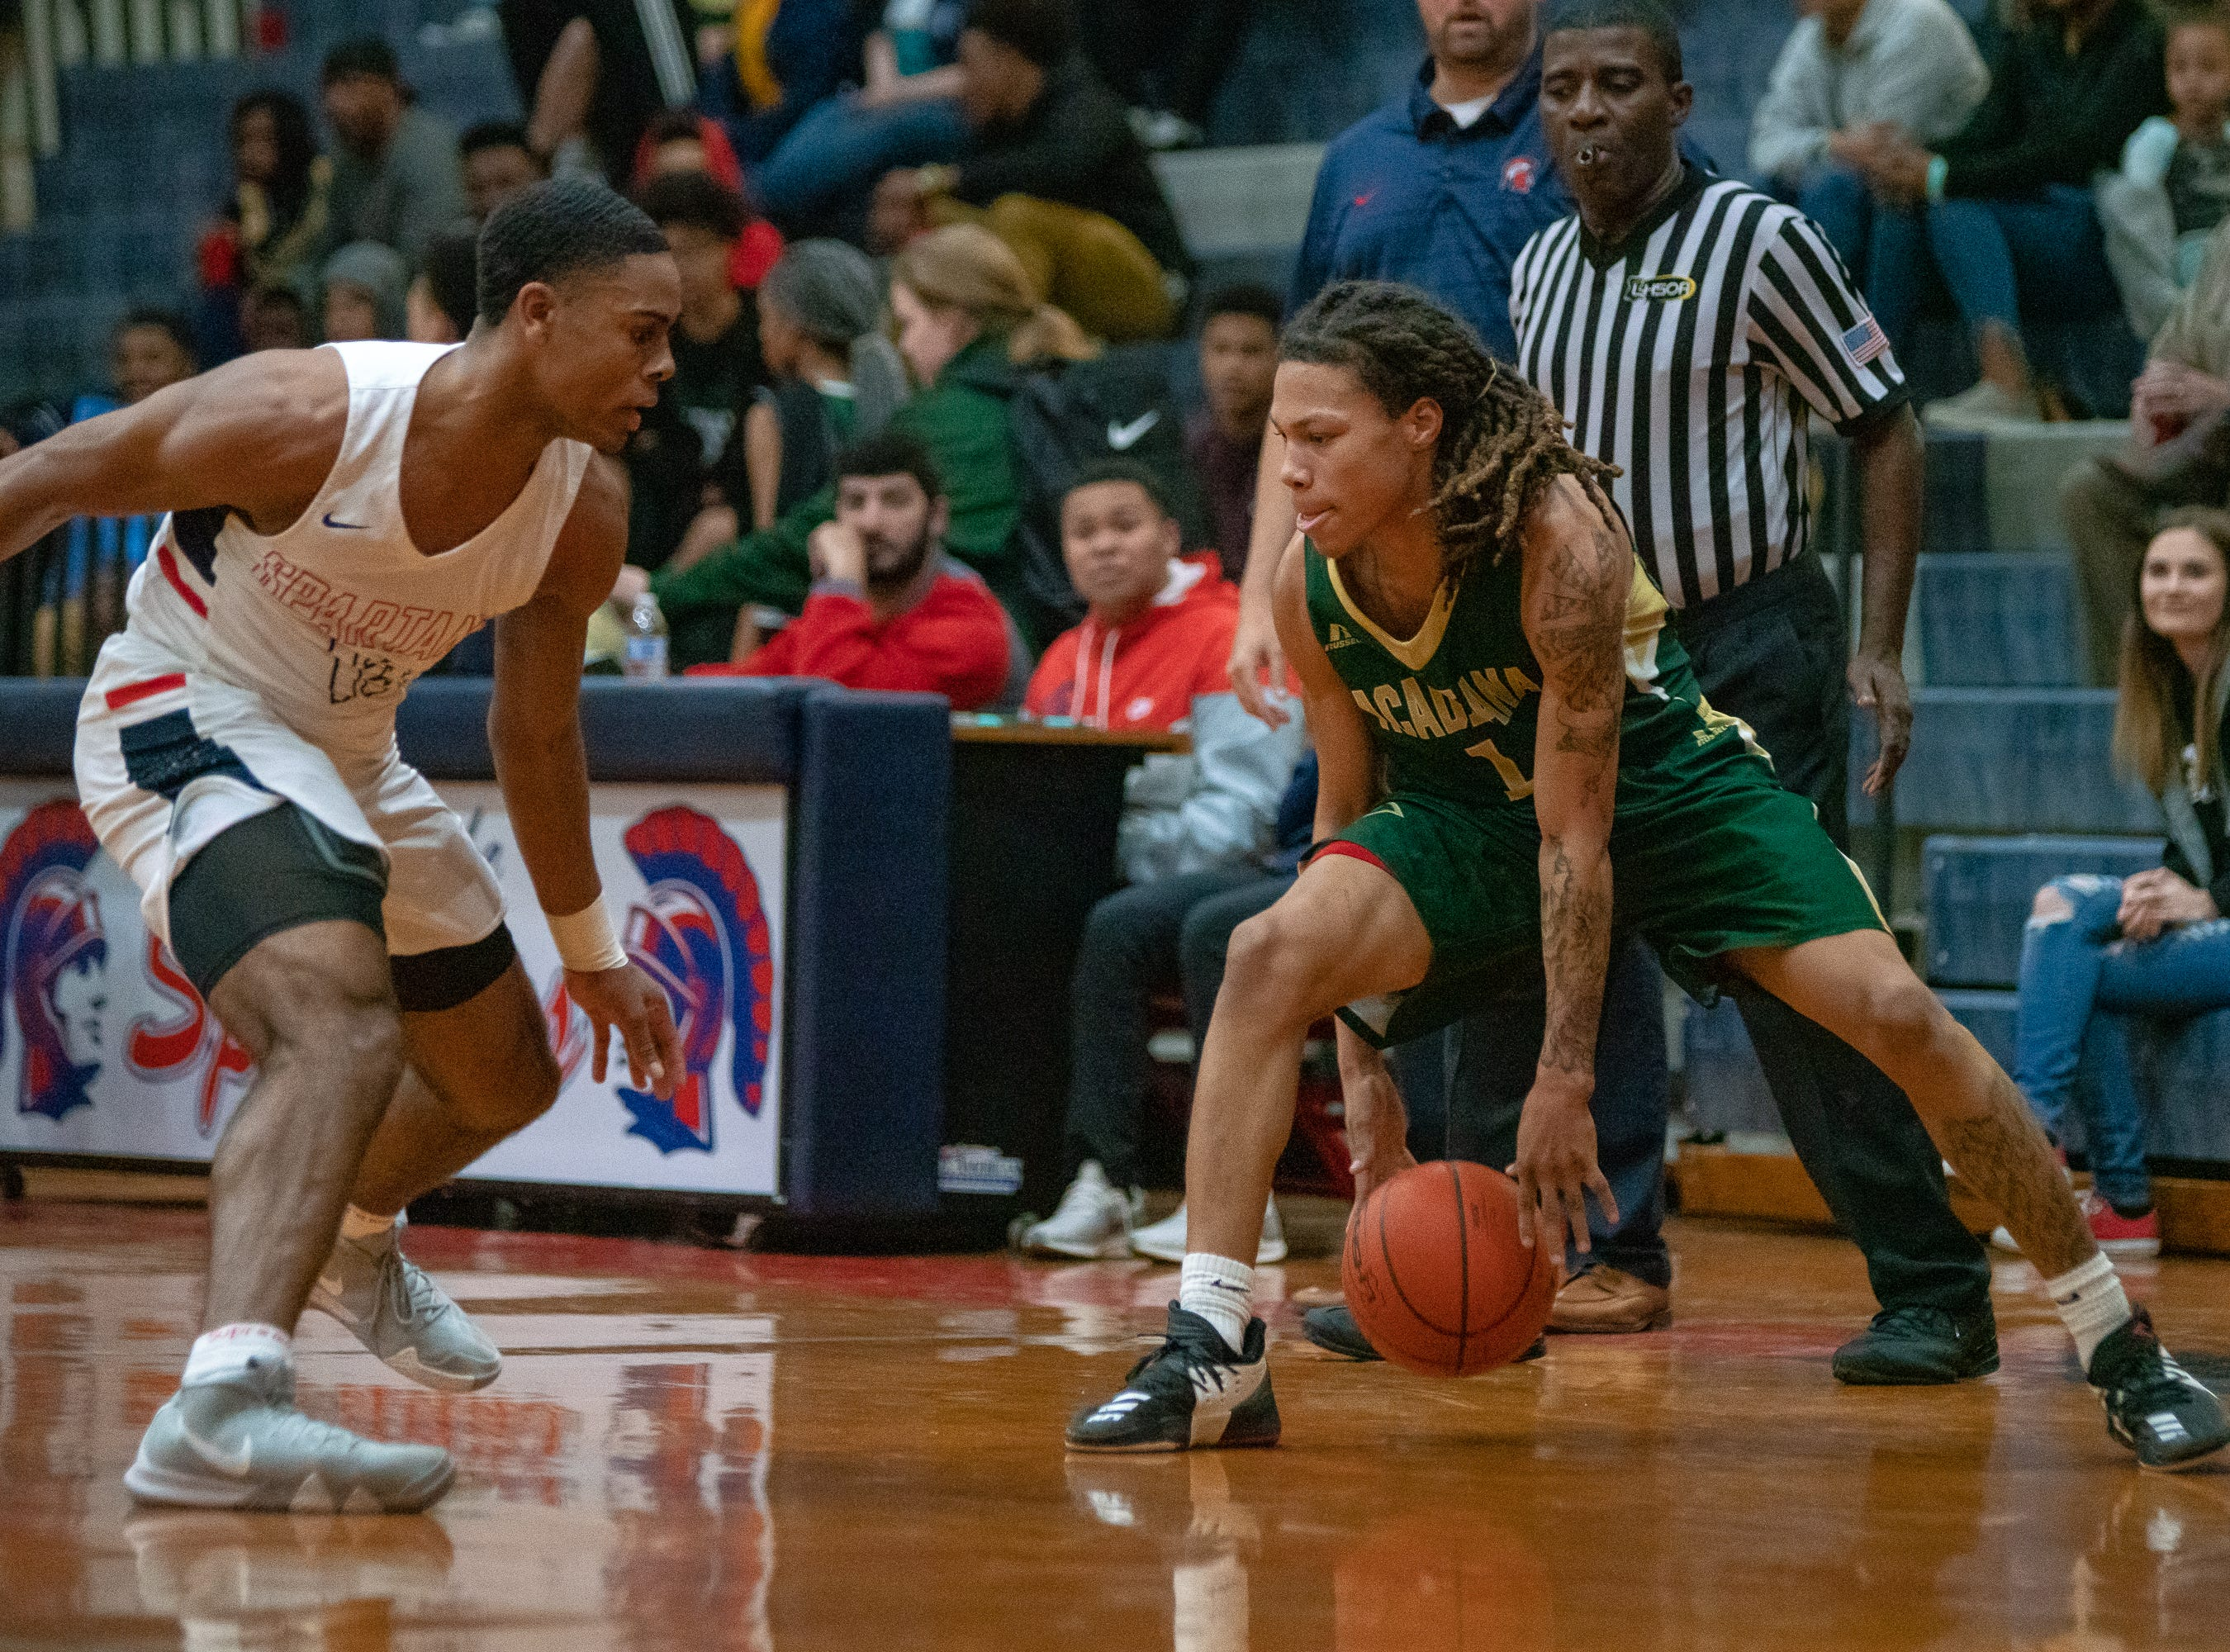 Acadiana High's Dentreal Mouton handles the ball on the court as the Comeaux High Spartans take on the Acadiana High Wreckin' Rams at Comeaux high school on Jan. 25, 2019.